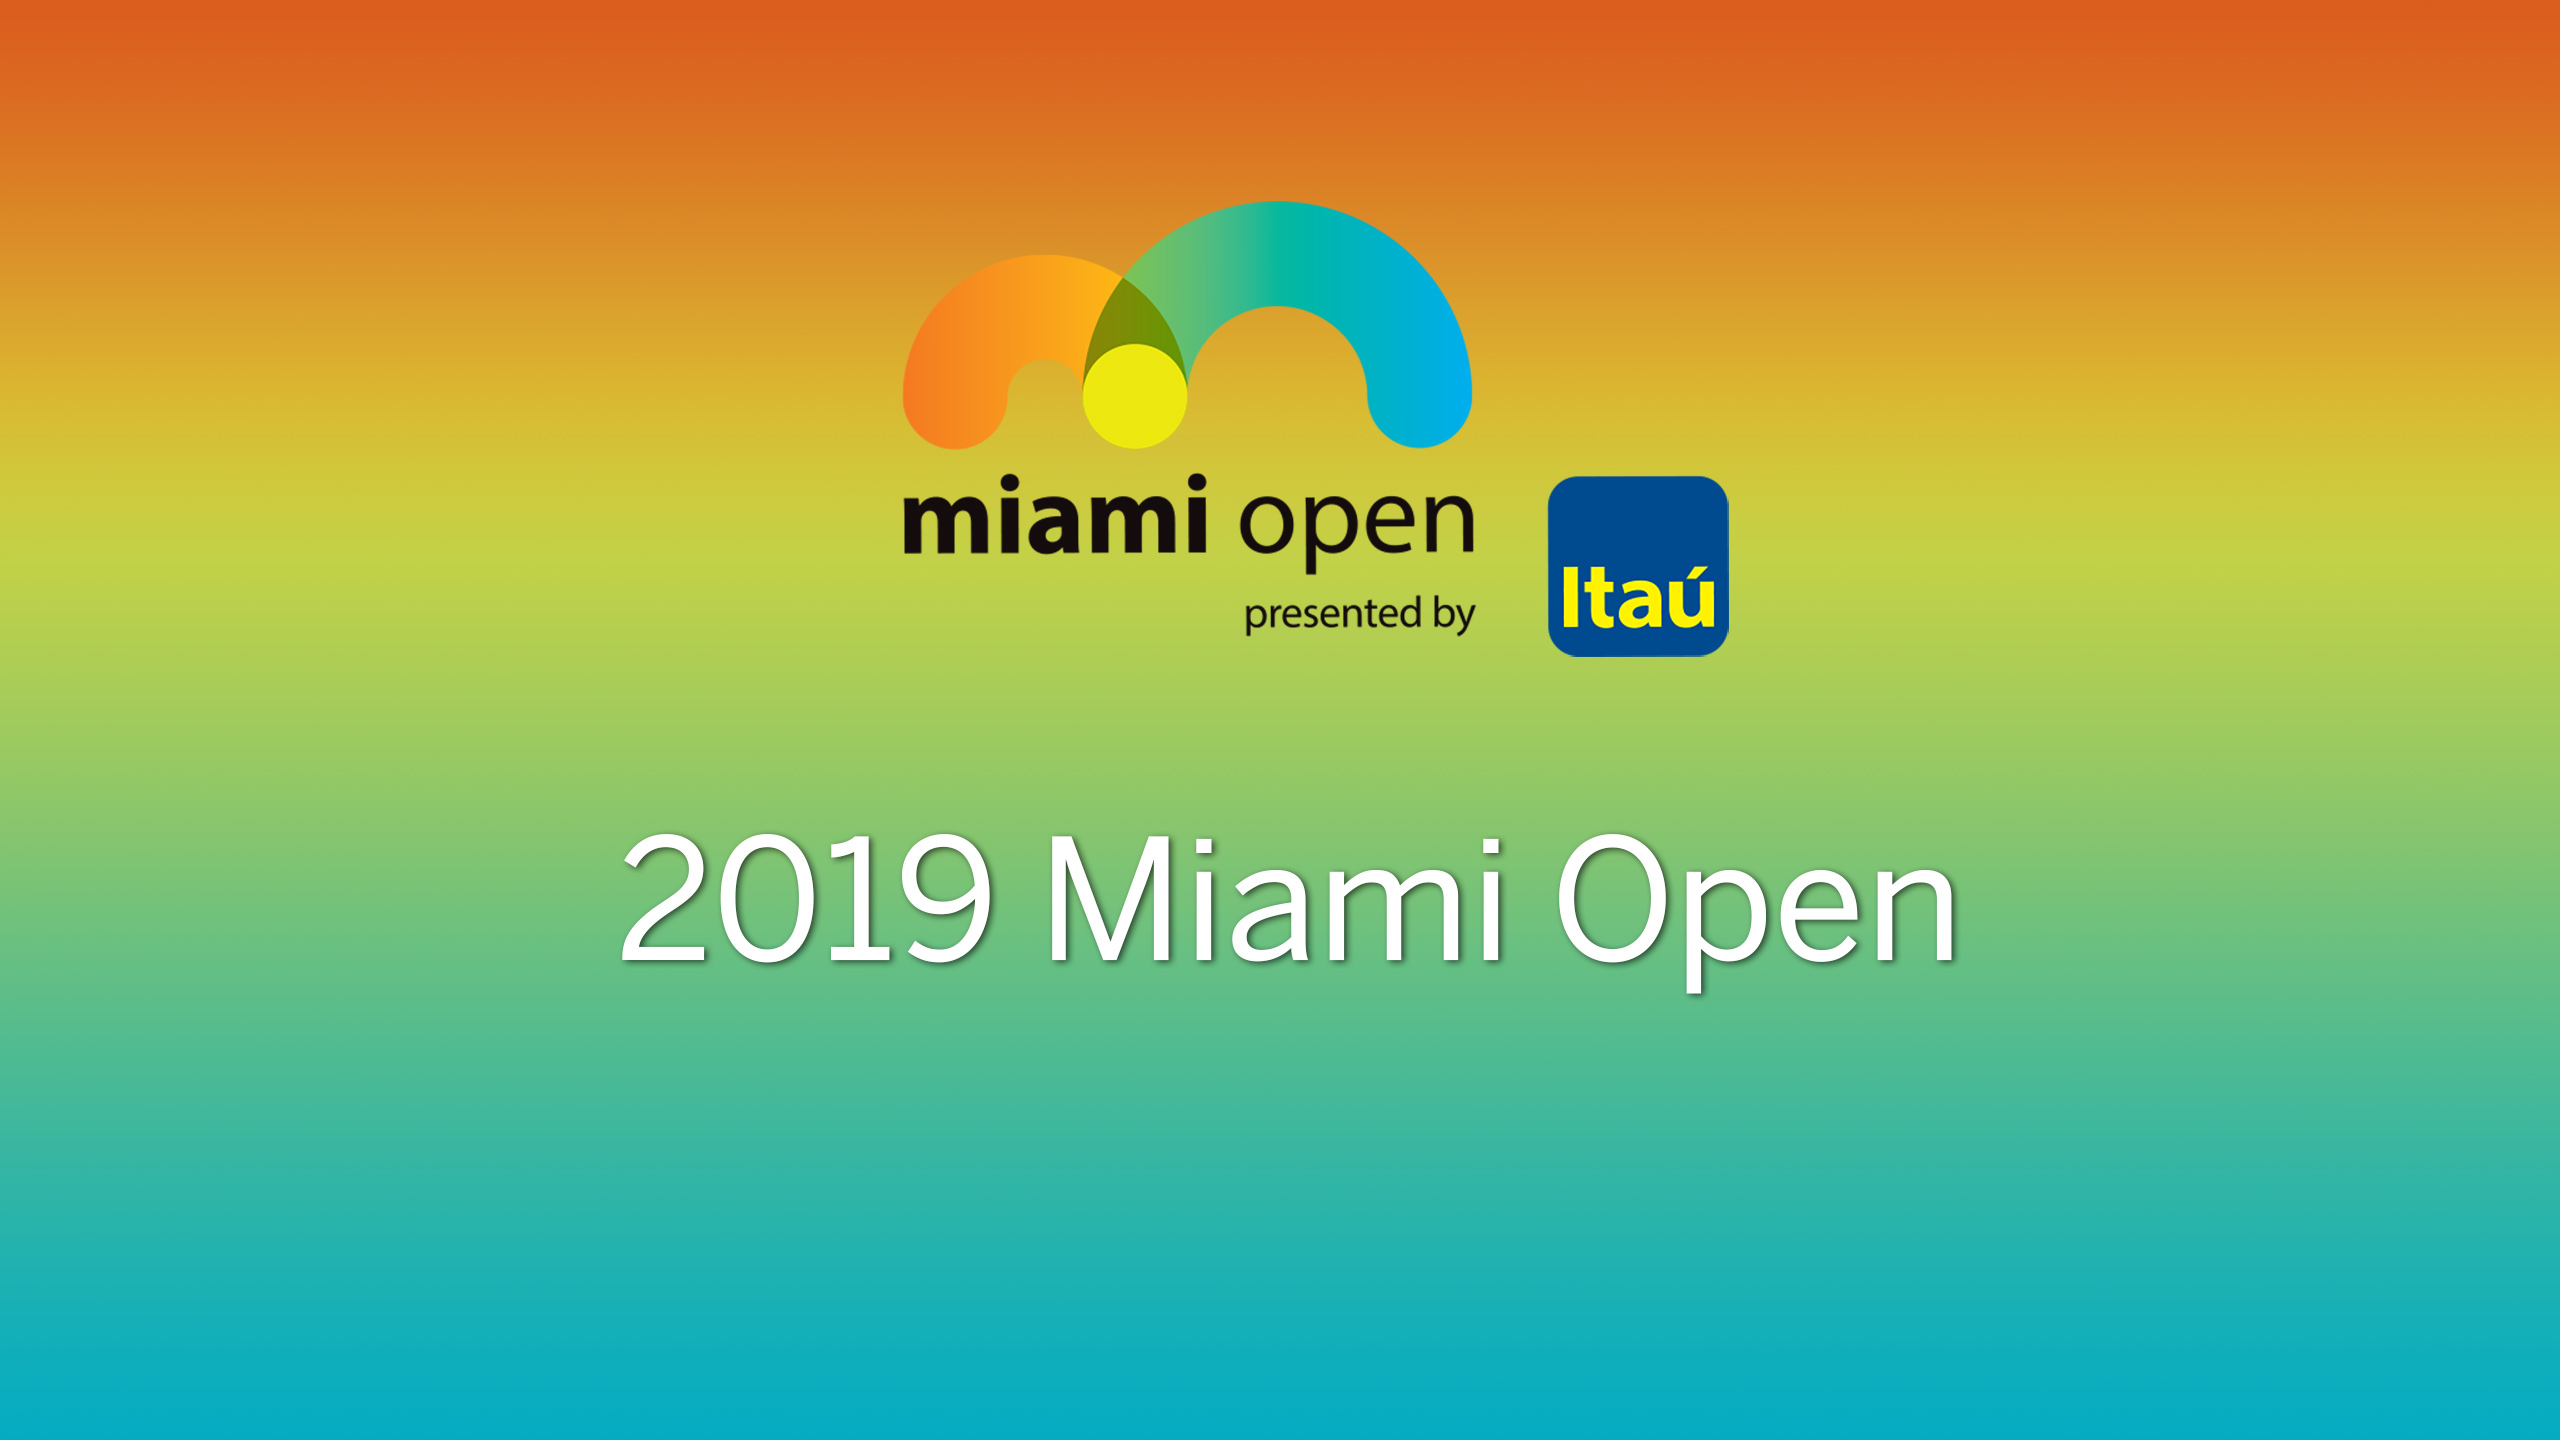 In Spanish - Miami Open